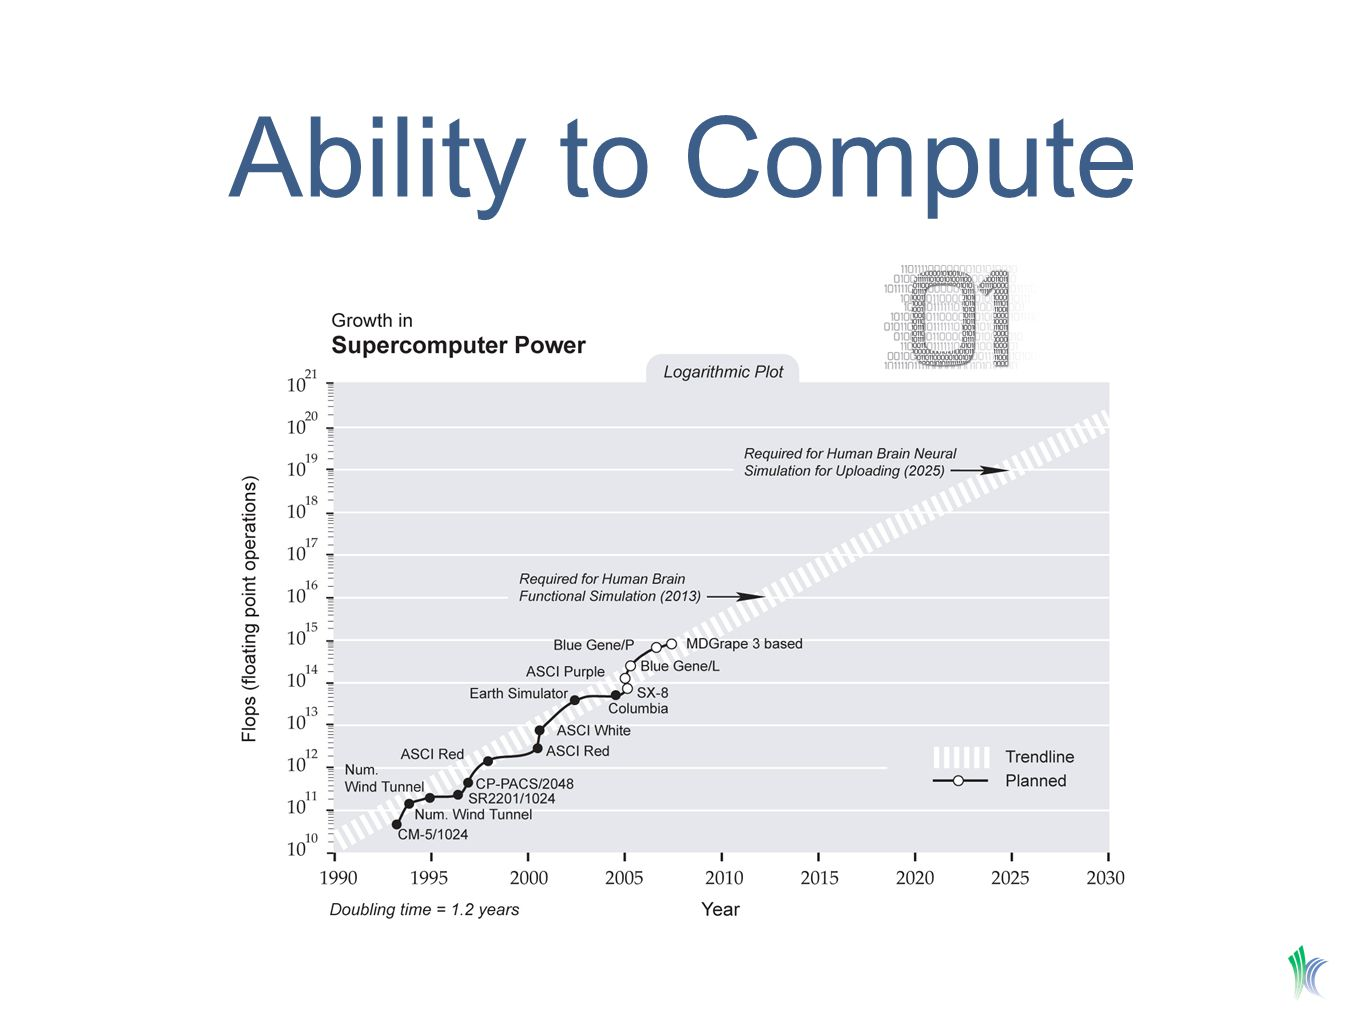 Ability to Compute